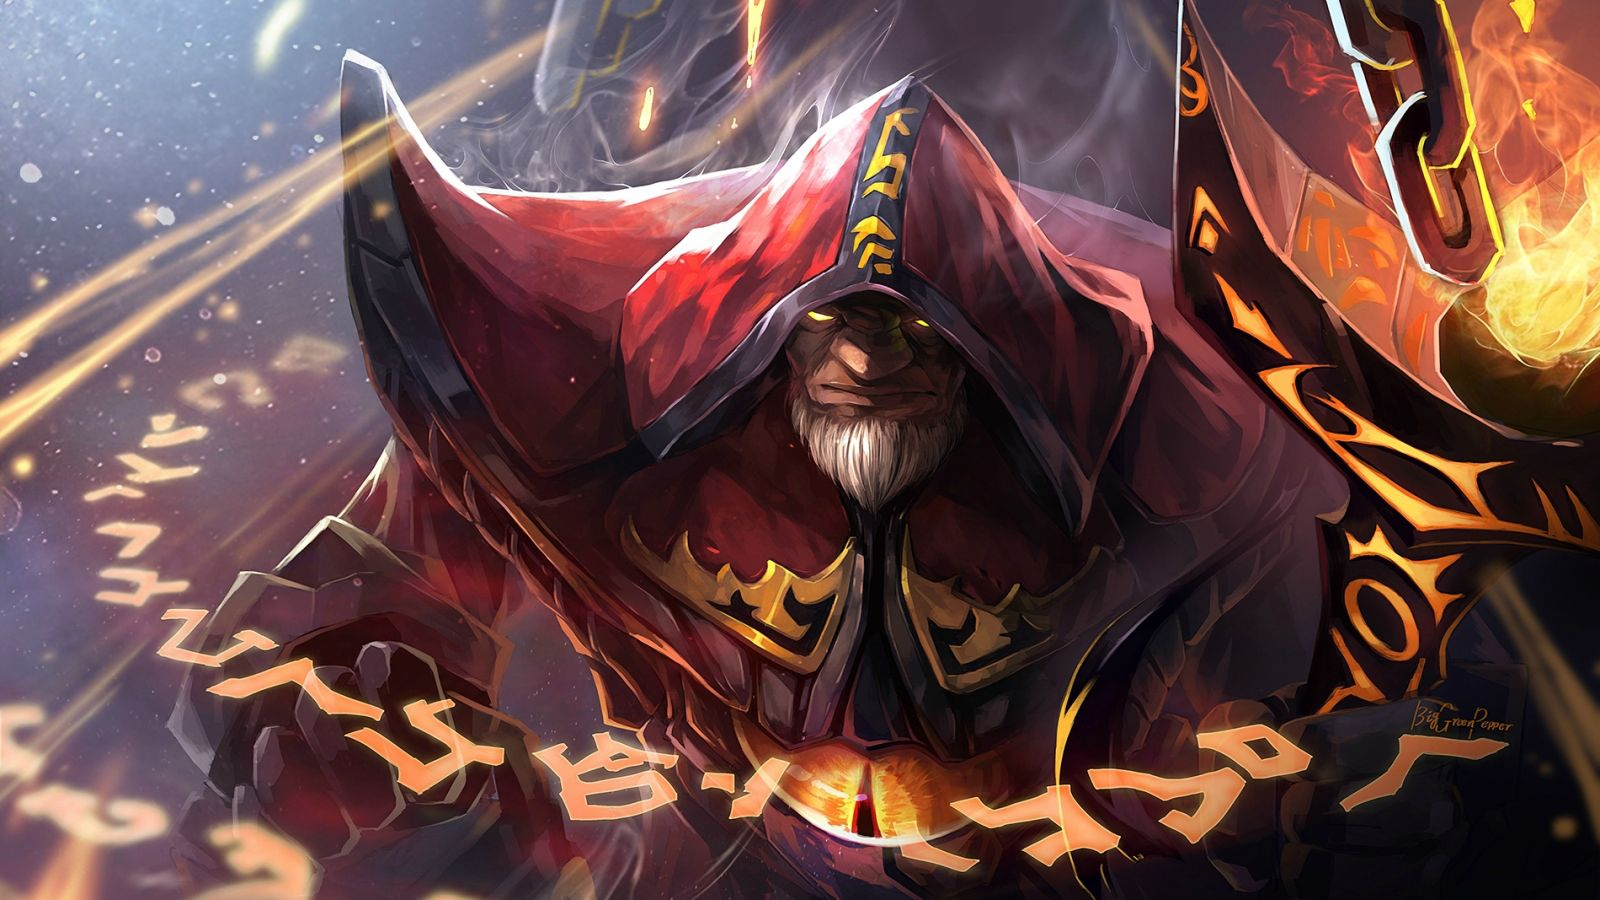 Wallpaper Abyss Explore the Collection Dota Video Game DotA 2 458890 1600x900